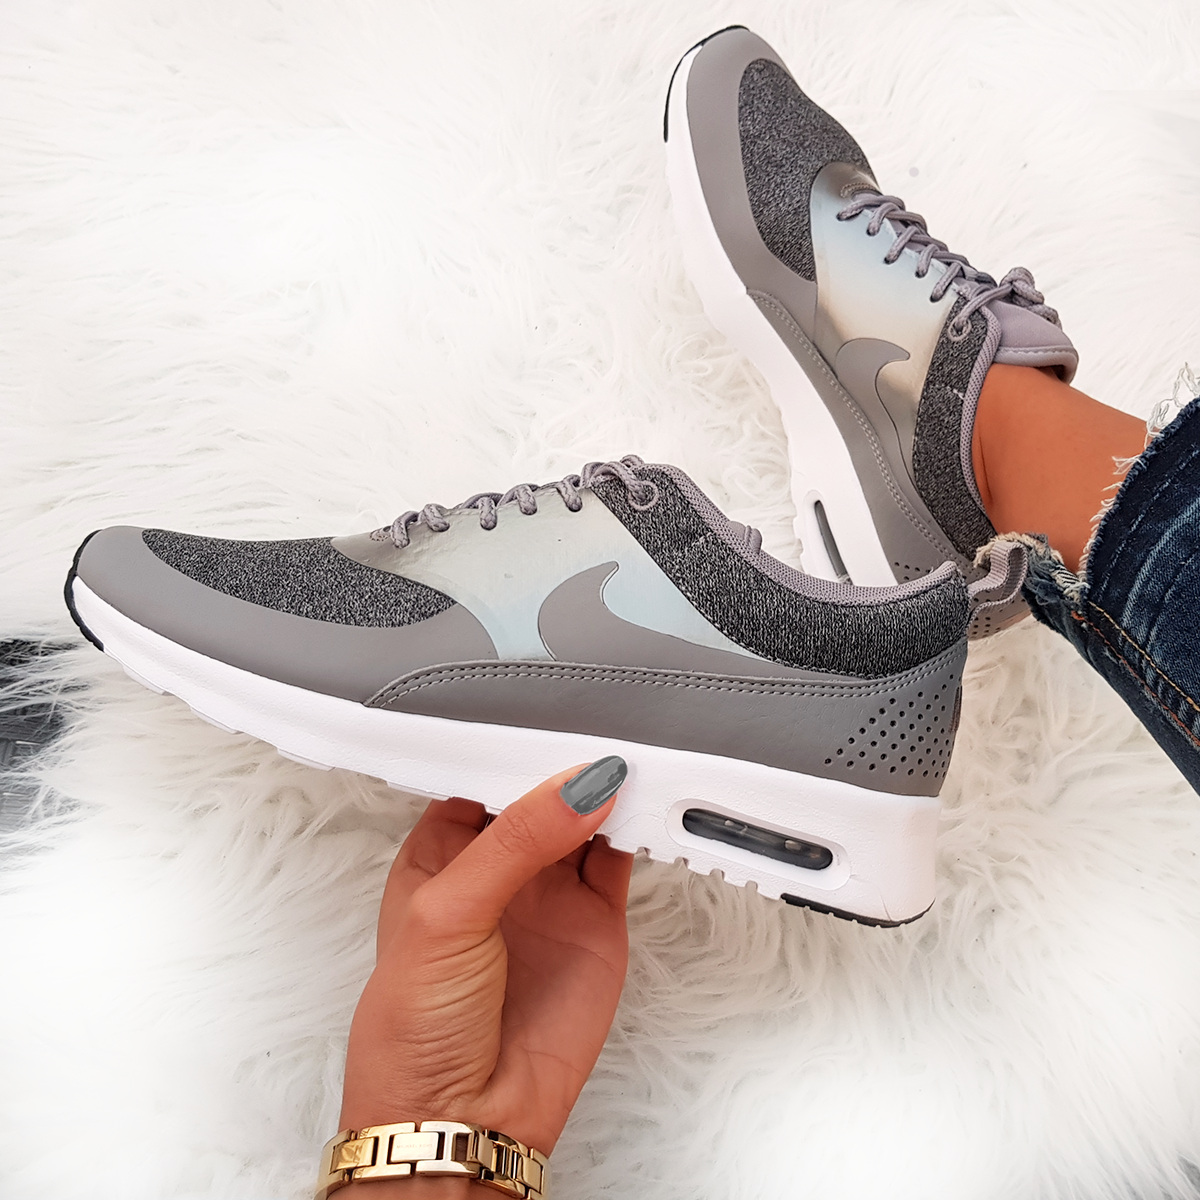 Nike Air Max Thea Knit grau grey weiss white Foto